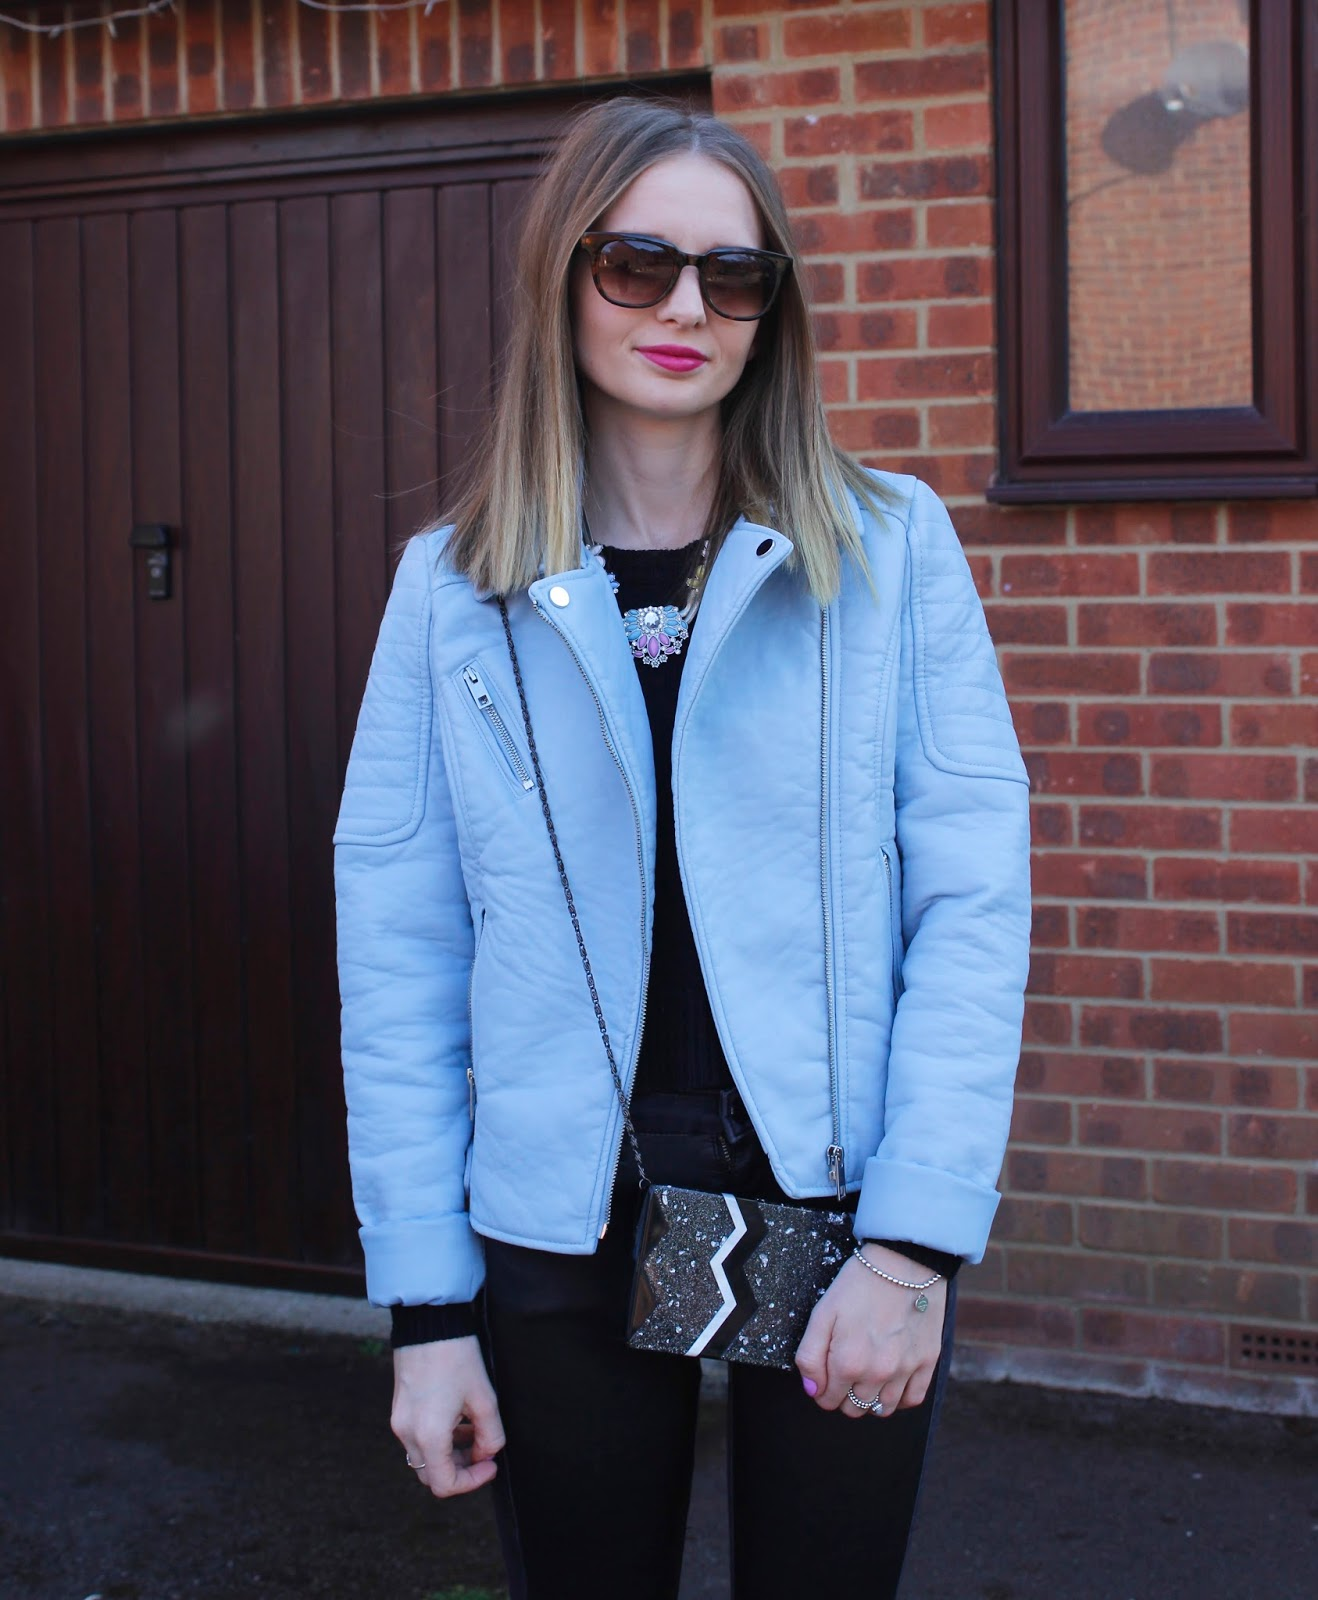 Wearing George at Asda Blue Leather Look Jacket, Warehouse Box Clutch & Necklace